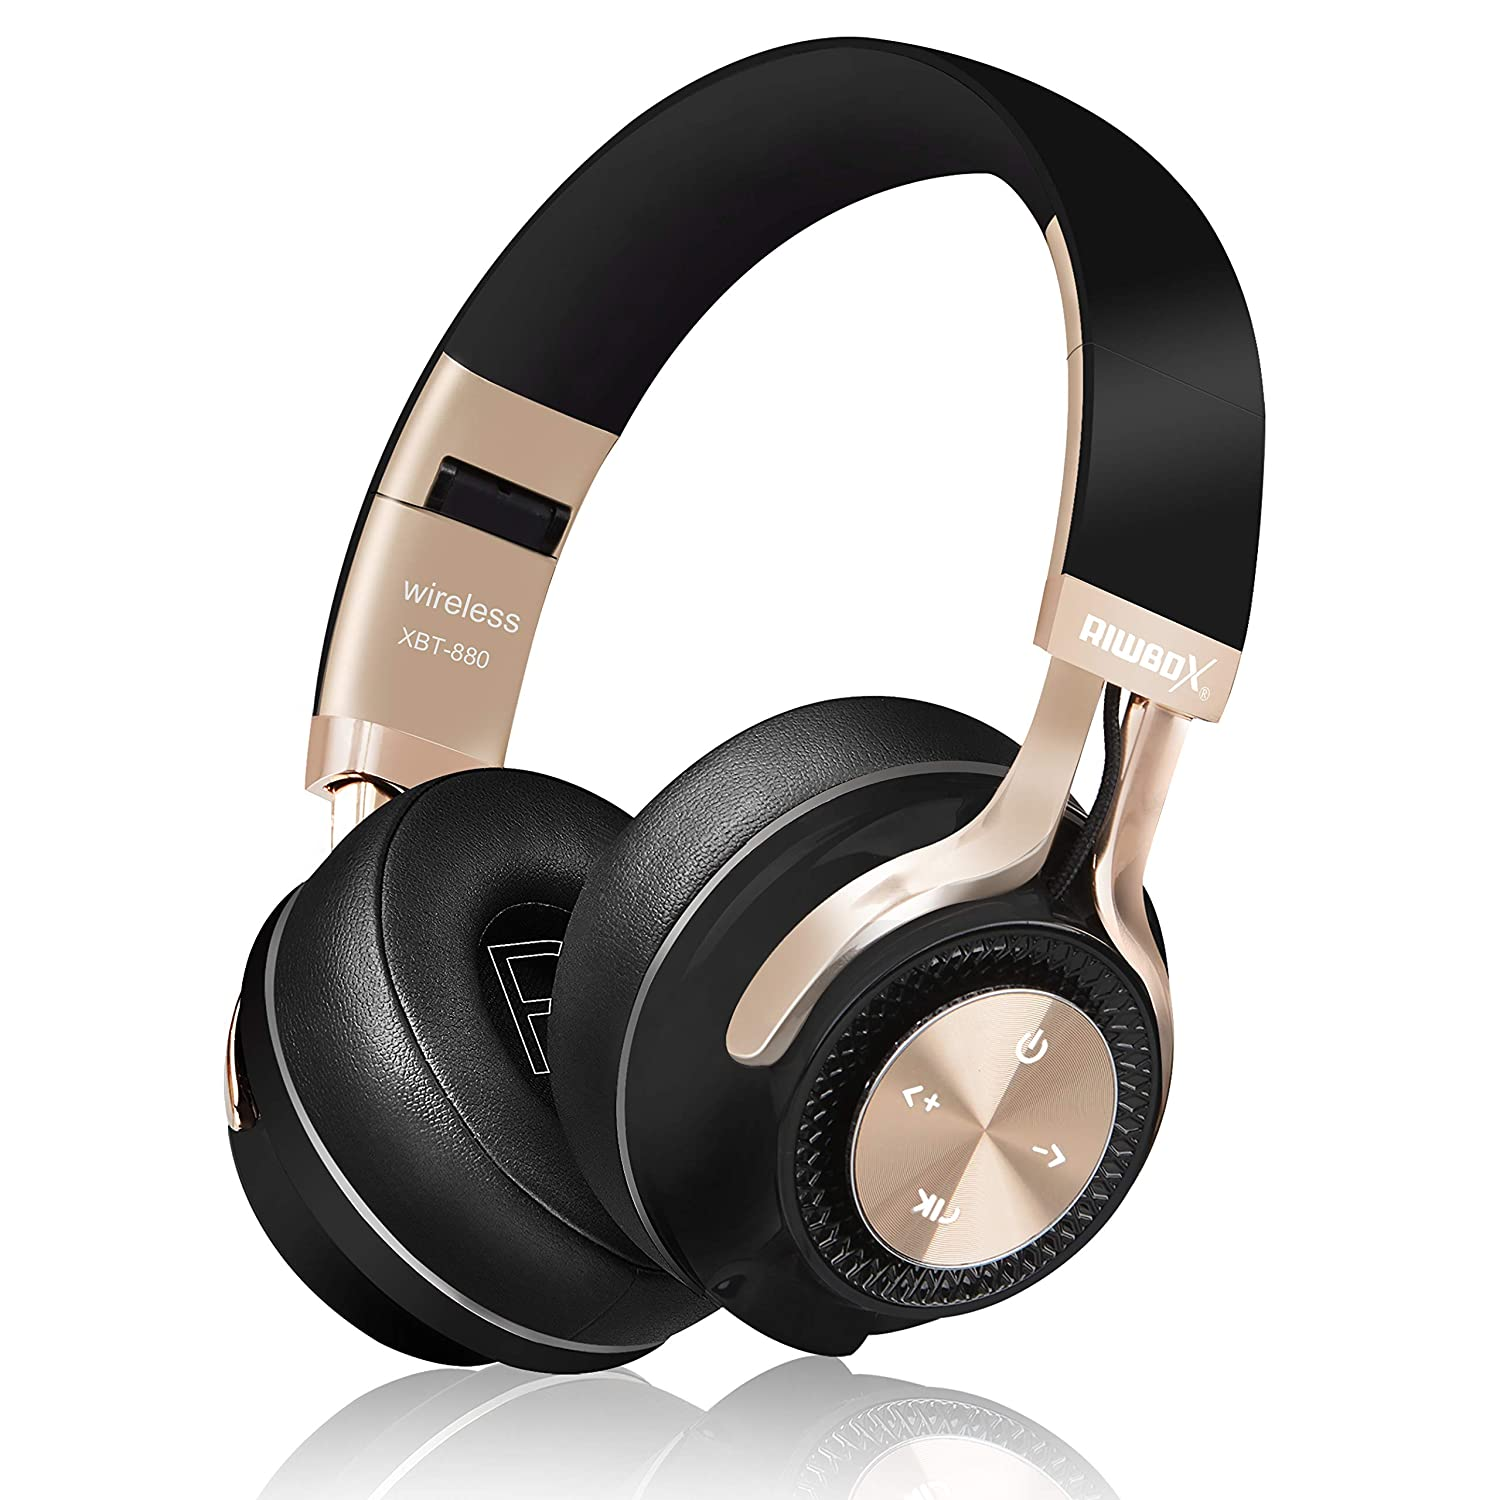 Bluetooth Headphones, Riwbox XBT-880 Wireless Bluetooth Headphones Over Ear with Microphone and Volume Control Wireless and Wired Foldable Headset for iPhone/iPad/PC/Cell Phones/TV (Black&Gold)